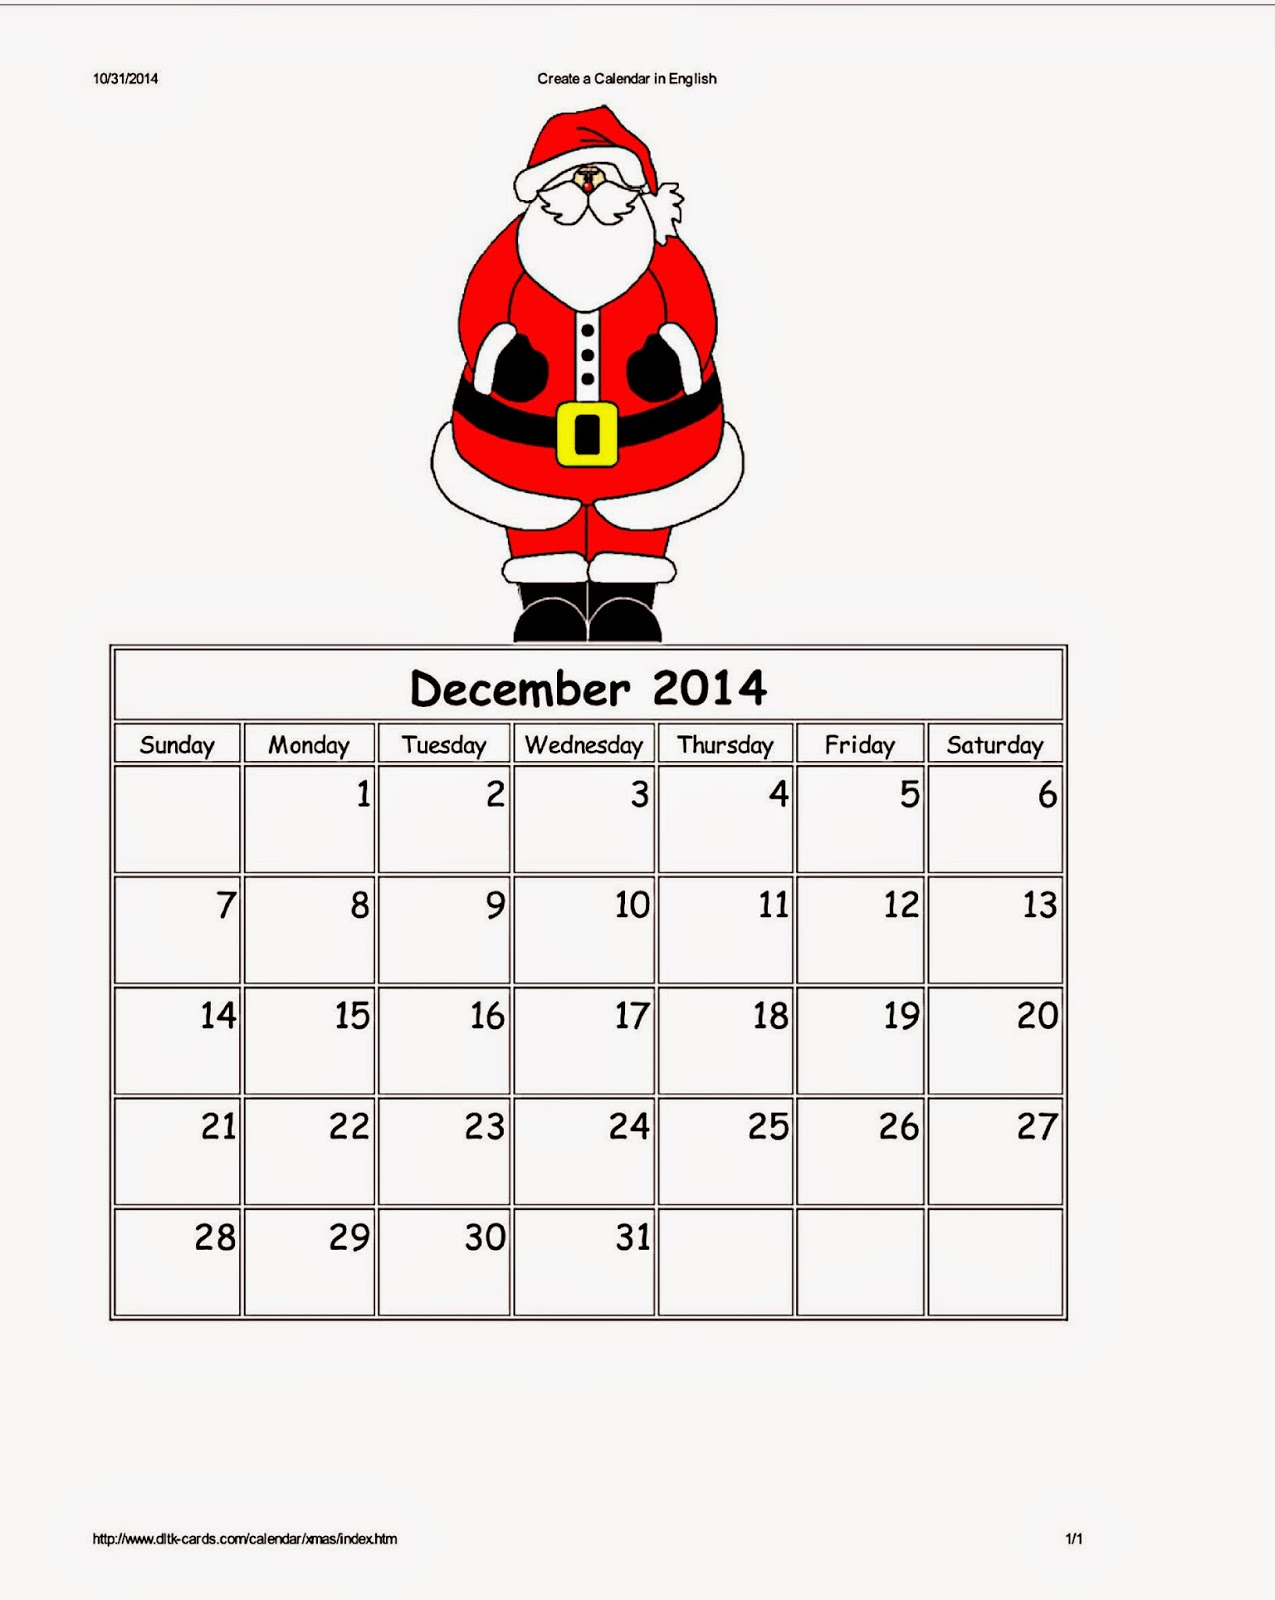 Christmas Calendar 2014 : Dltk s custom printable holiday calendars parenting times